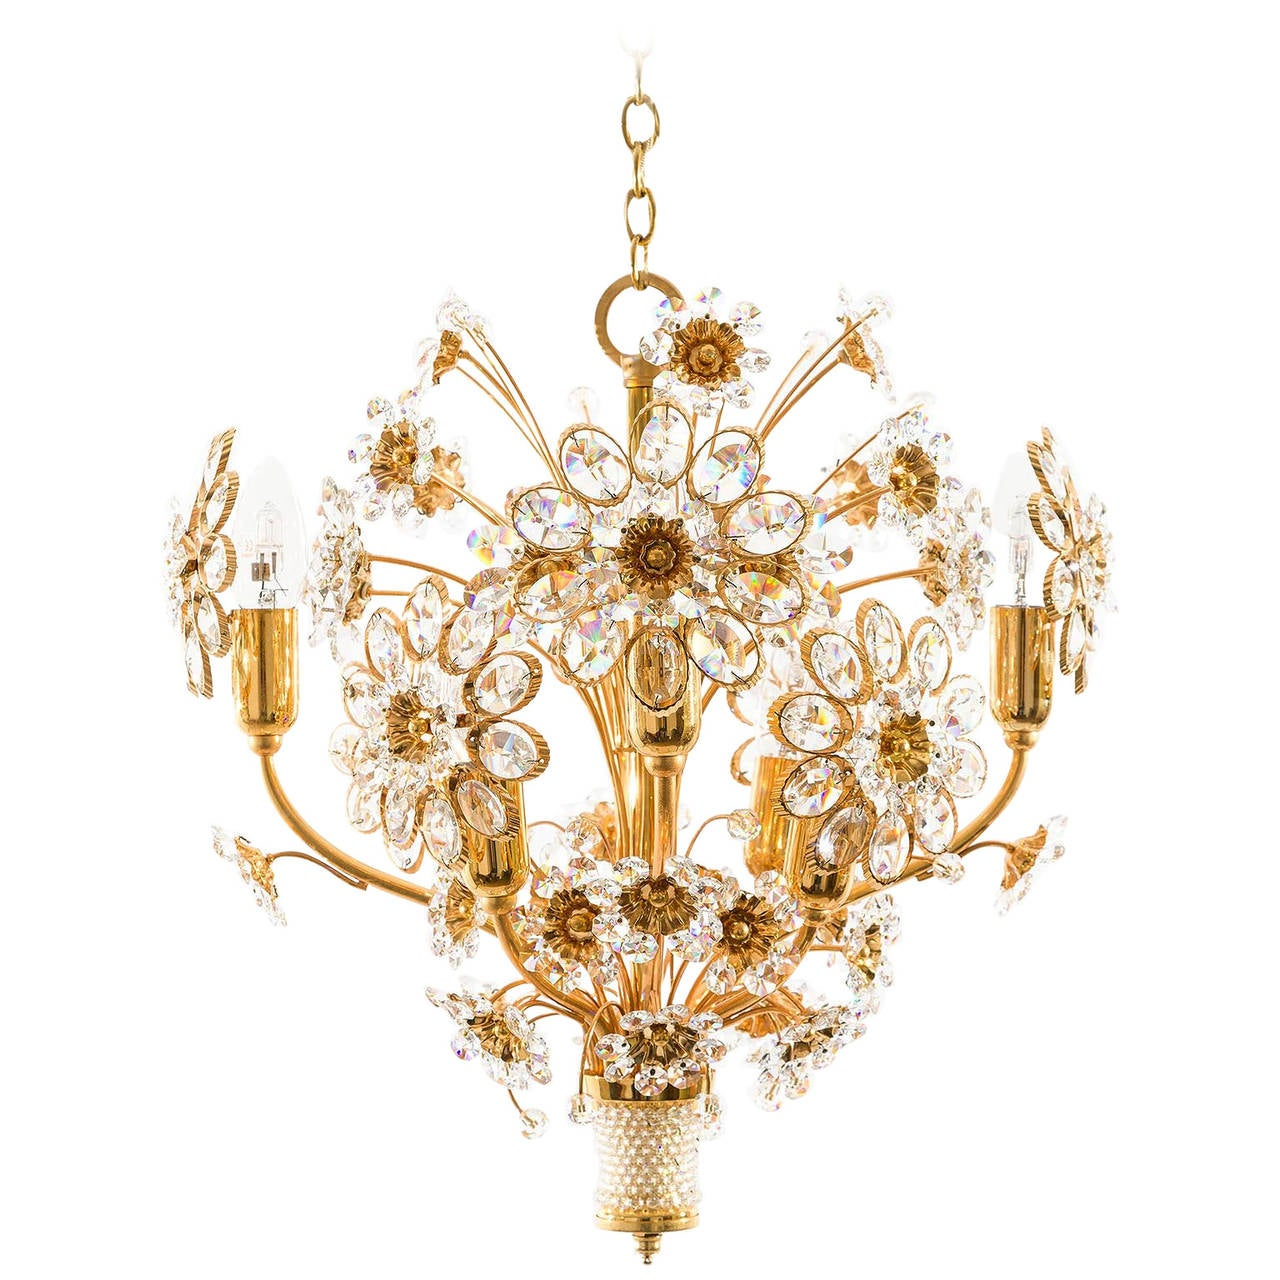 Palwa Pendant Light or Chandelier, Gilt Brass and Glass Crystal, Germany, 1960s